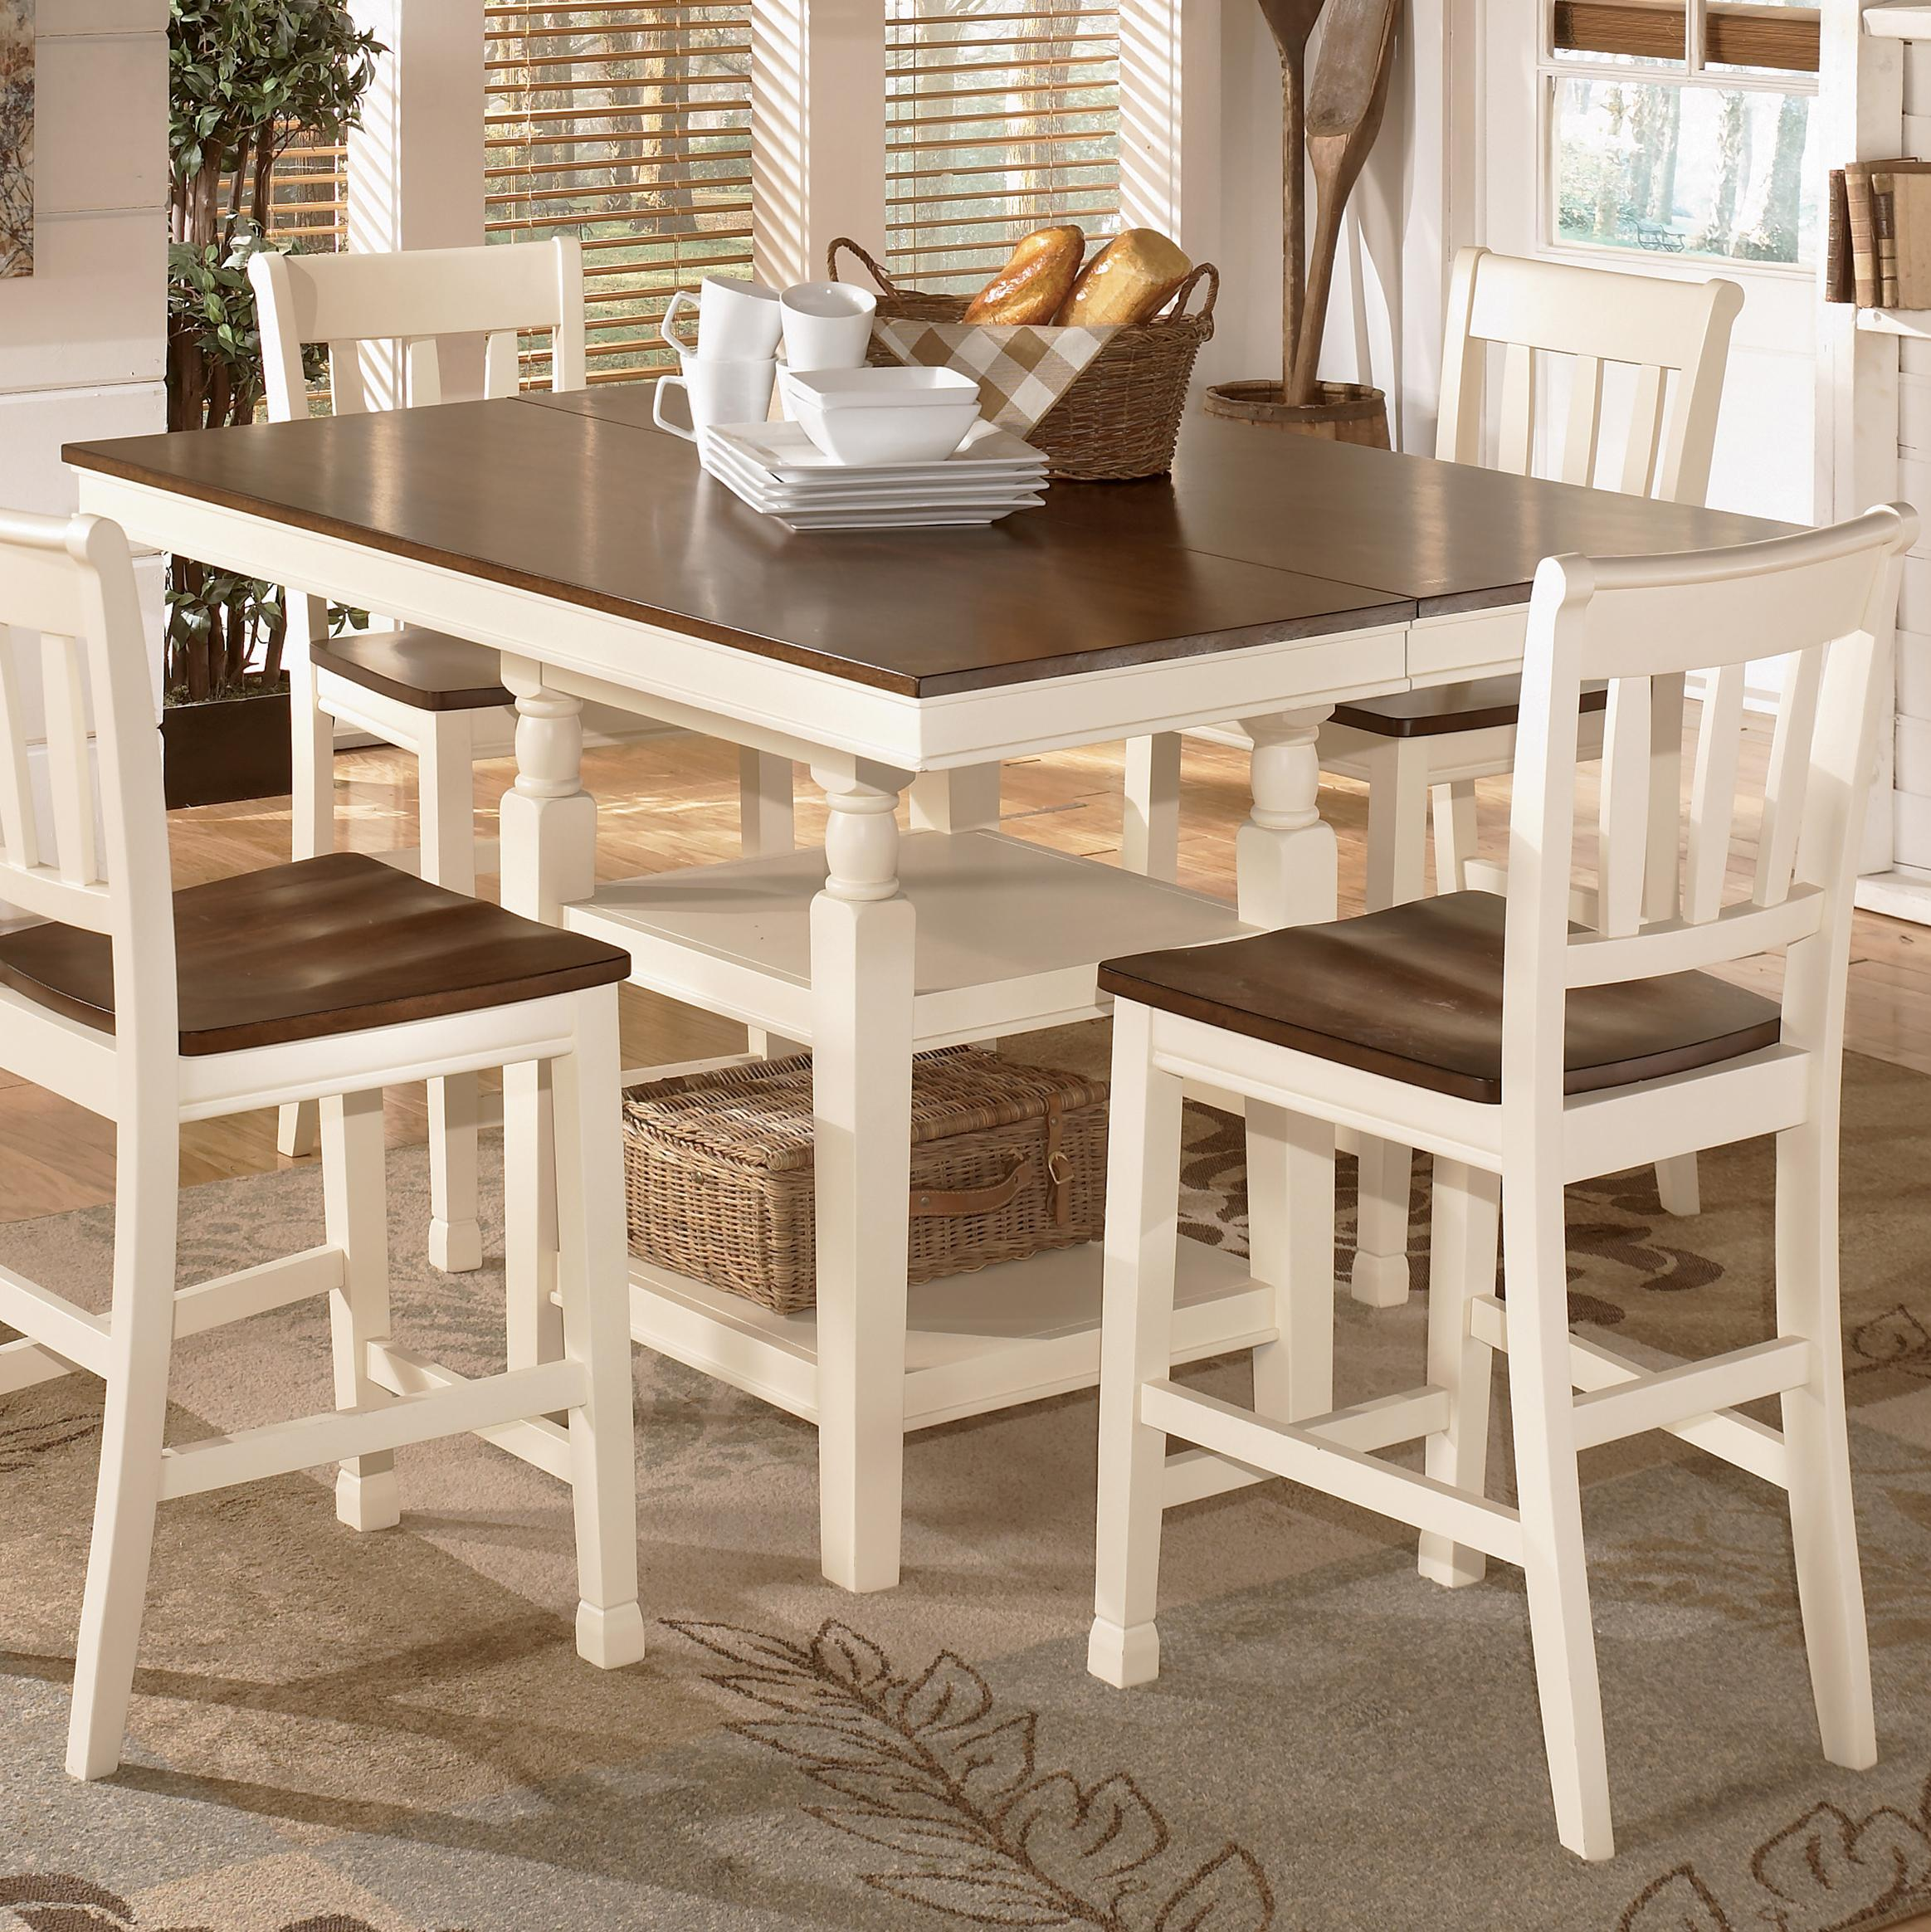 square kitchen table Signature Design by Ashley Whitesburg Square Dining Room Counter Ext Table Item Number D